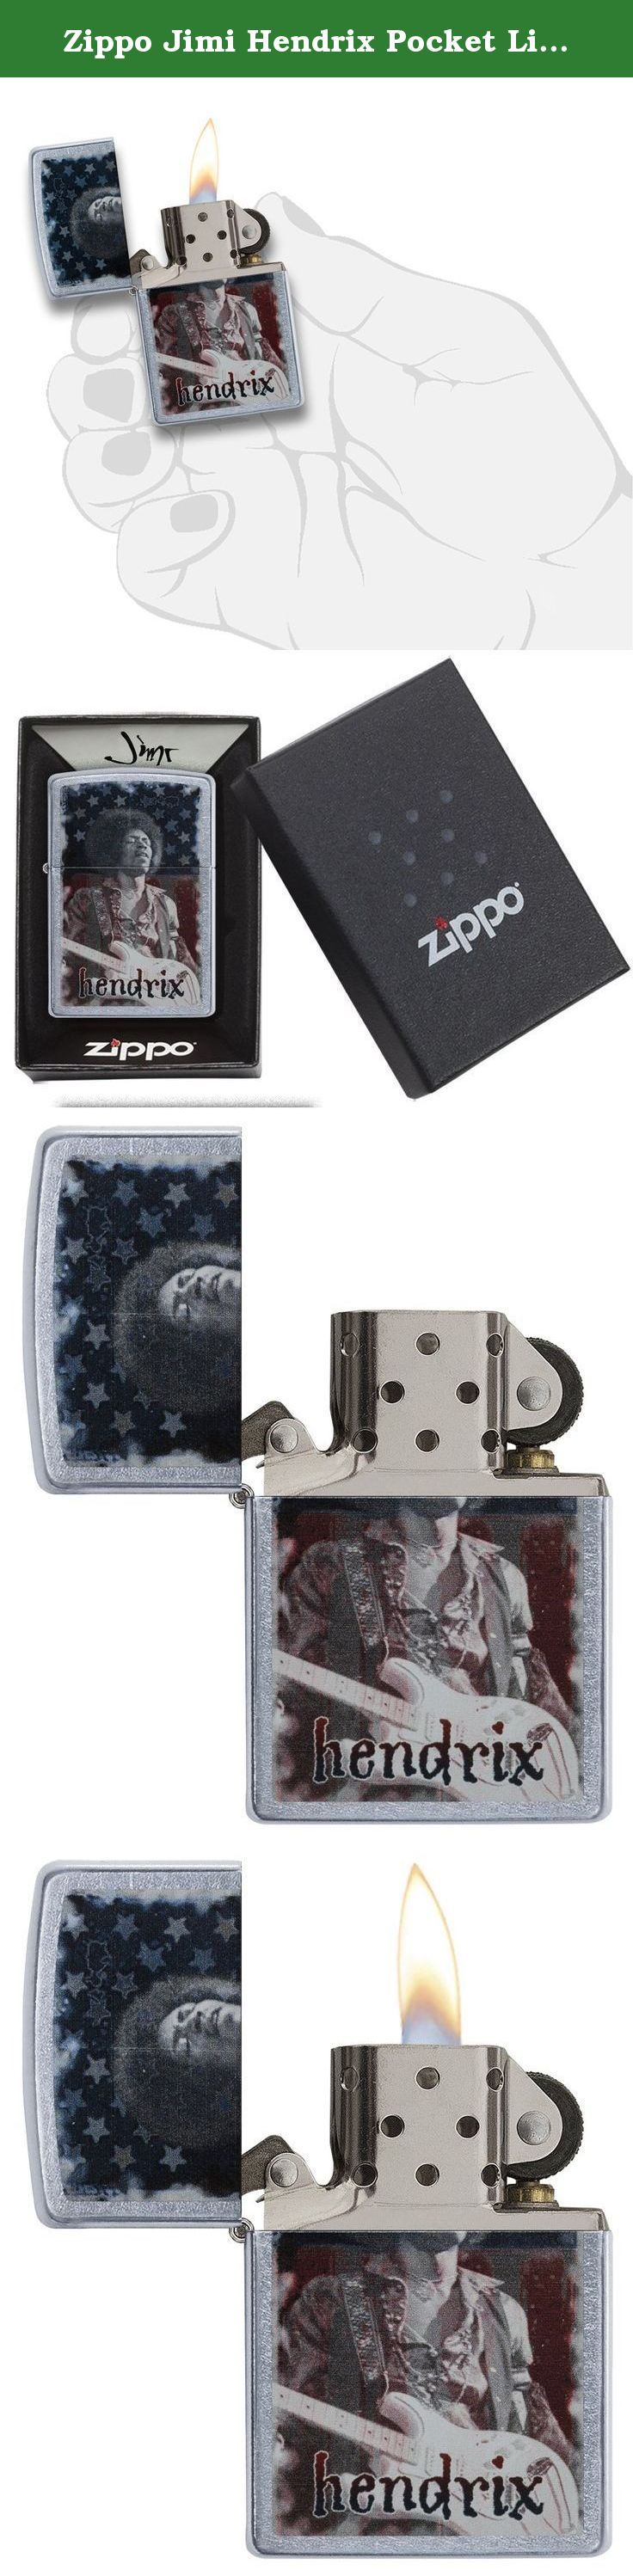 Zippo Jimi Hendrix Pocket Lighter, Street Chrome. Superstar jimi hendrix changed the face of music, fashion and lifestyle. And now he's changing the face of the iconic Zippo windproof lighter with this dynamic image of jimi in front of an American Flag, bringing back memories of his legendary performance of the star spangled banner, on a street chrome lighter. Lighter comes packaged in an elegant and environmentally friendly gift box, making this a perfect gift for anyone on your list…